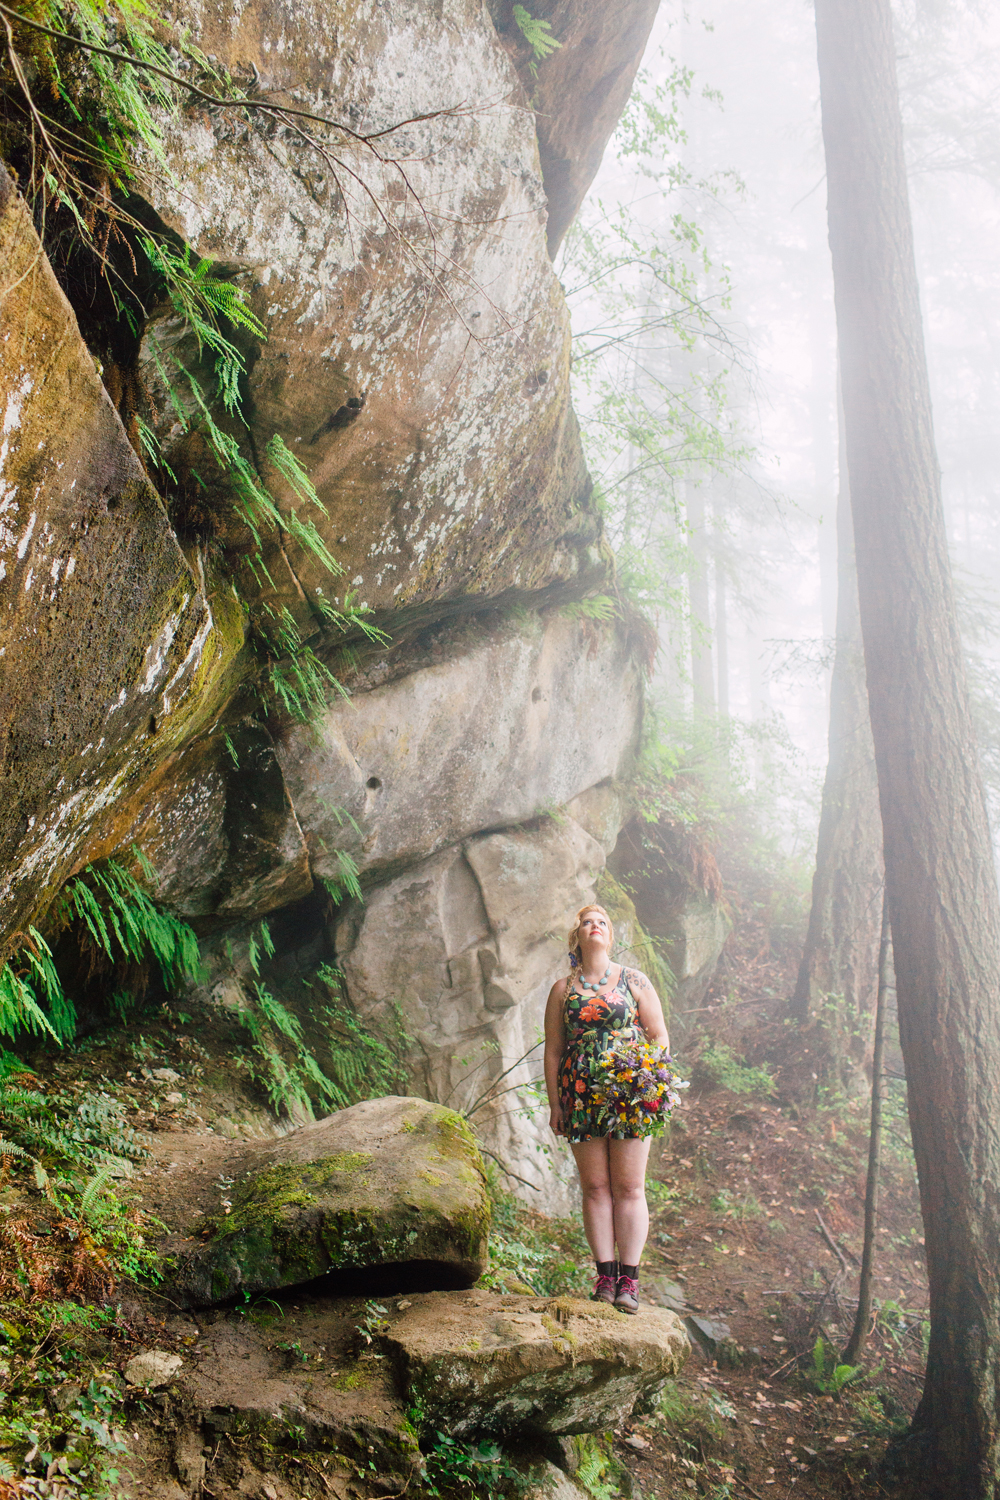 006-big-rock-trail-bellingham-hiking-katheryn-moran-photography-pozie-by-natalie.jpg